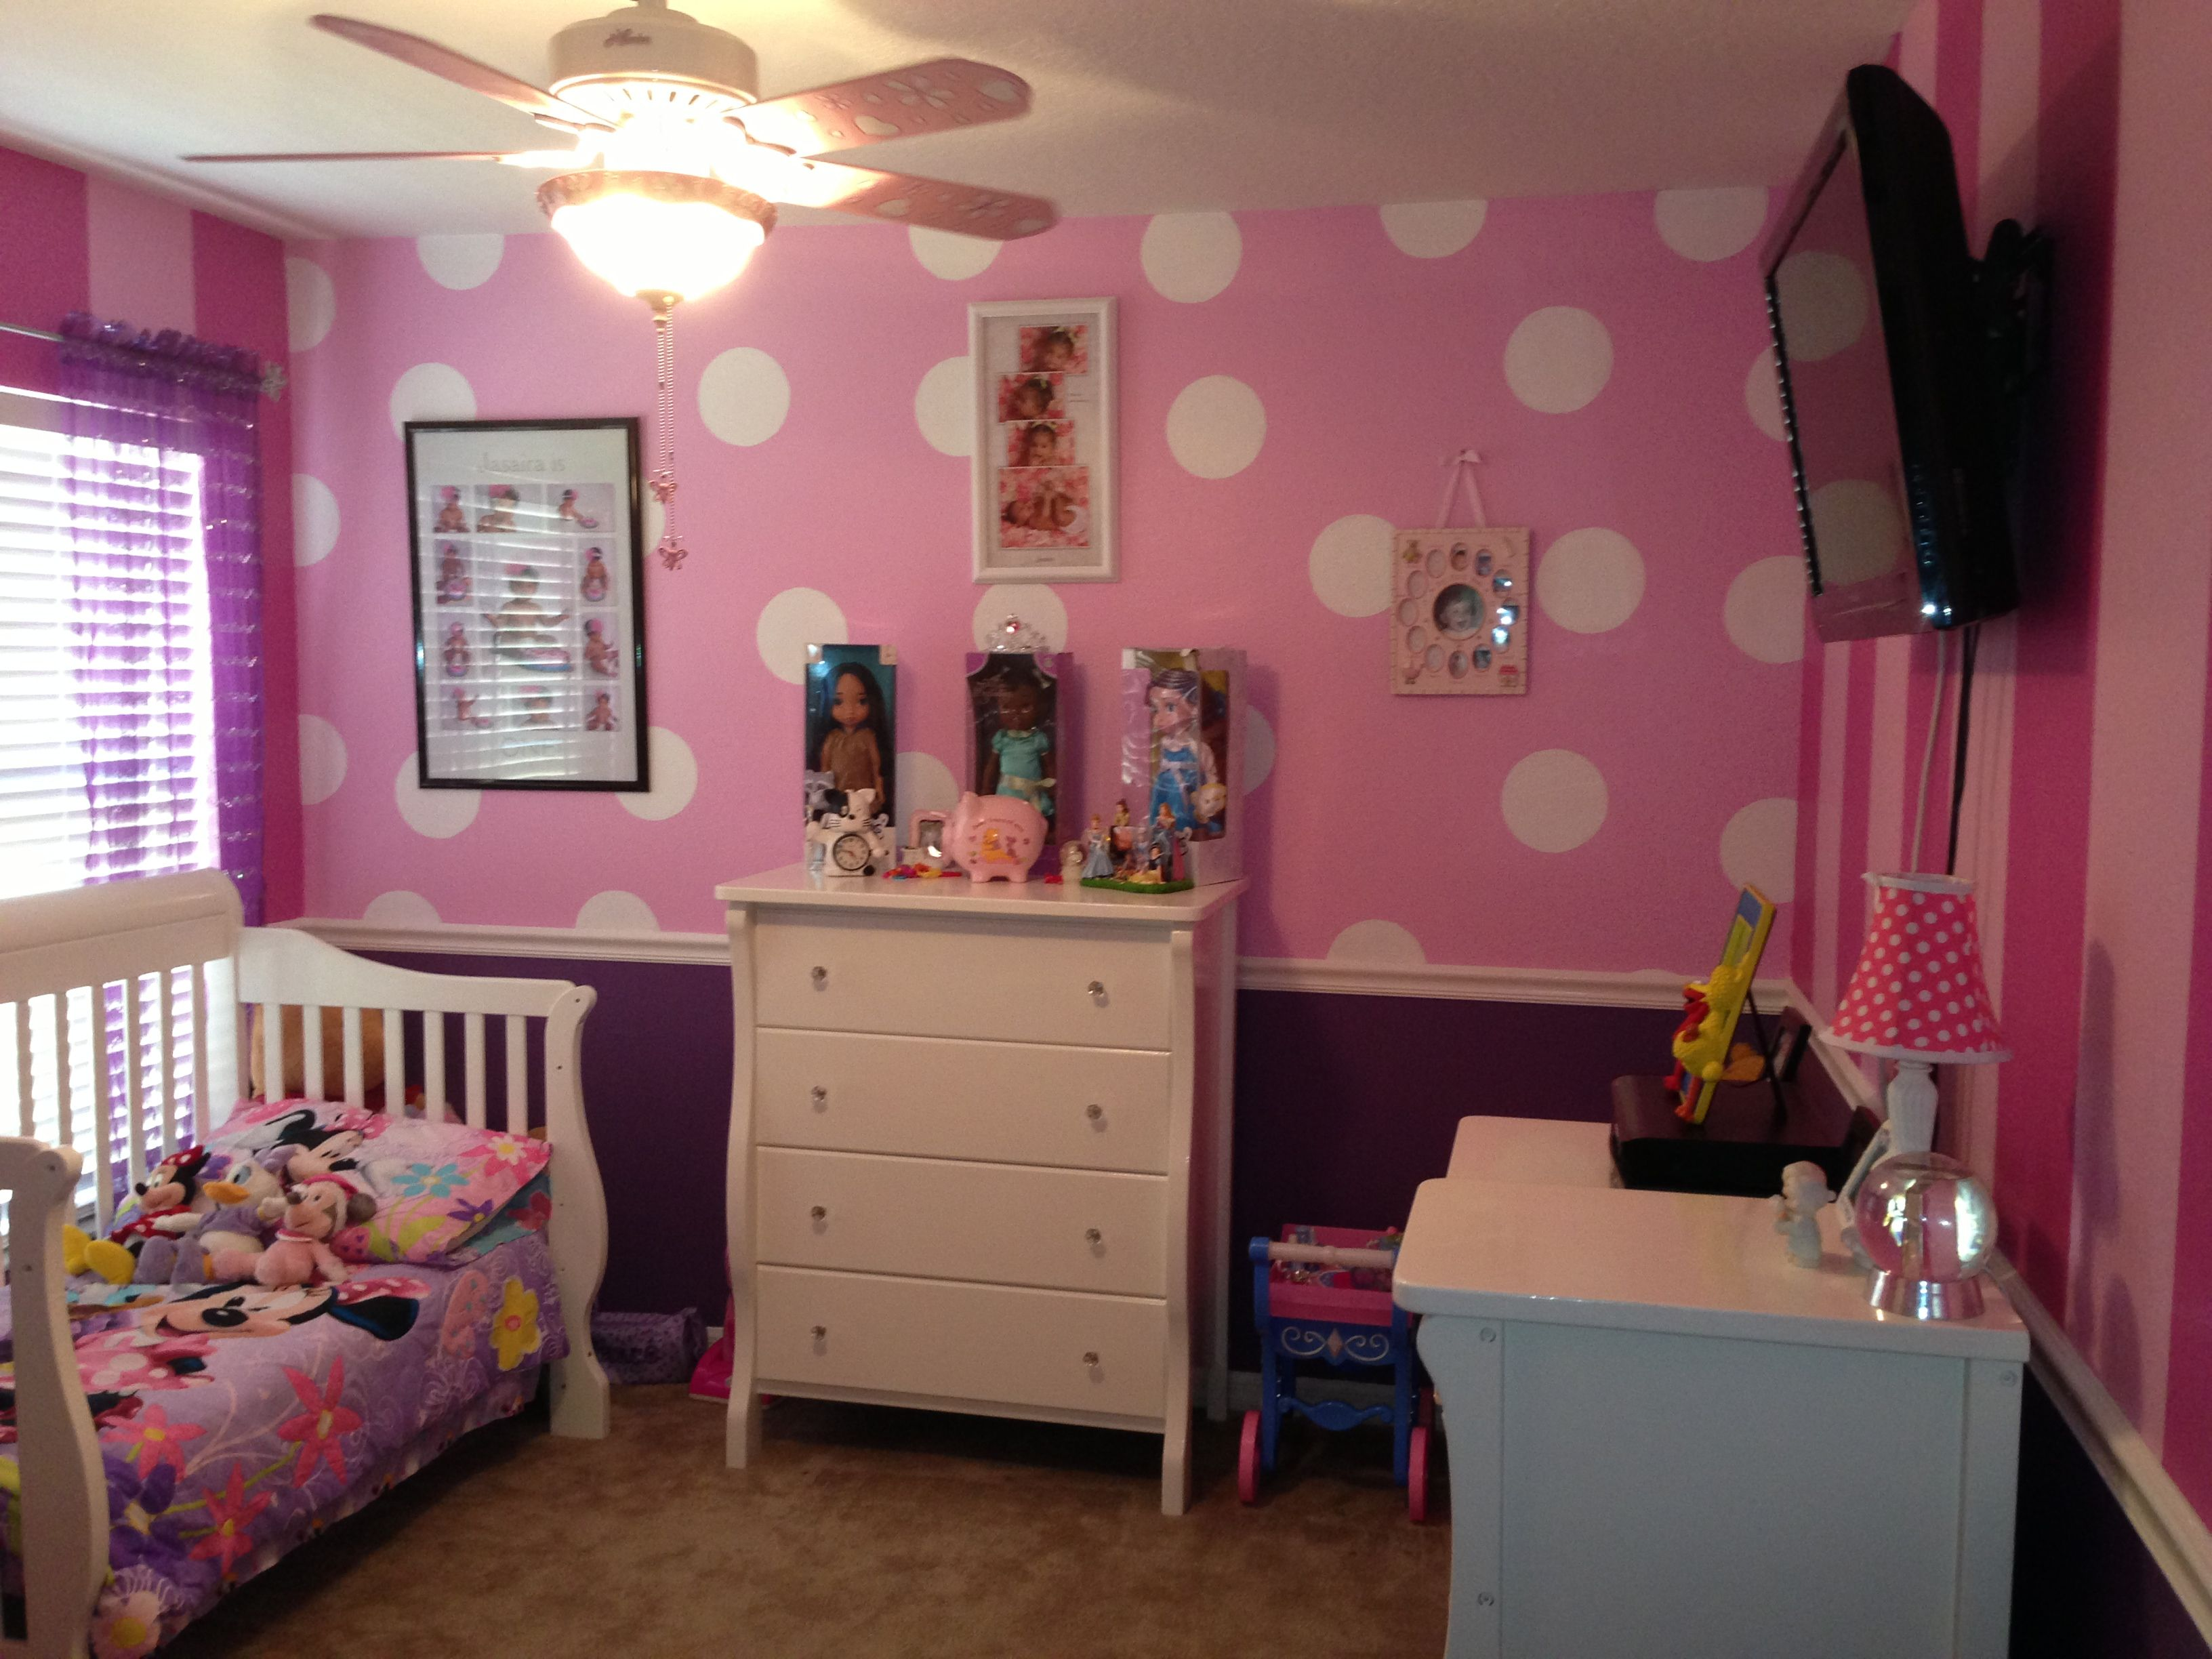 How Do It on | beds in 2019 | Minnie mouse room decor, Girl ...